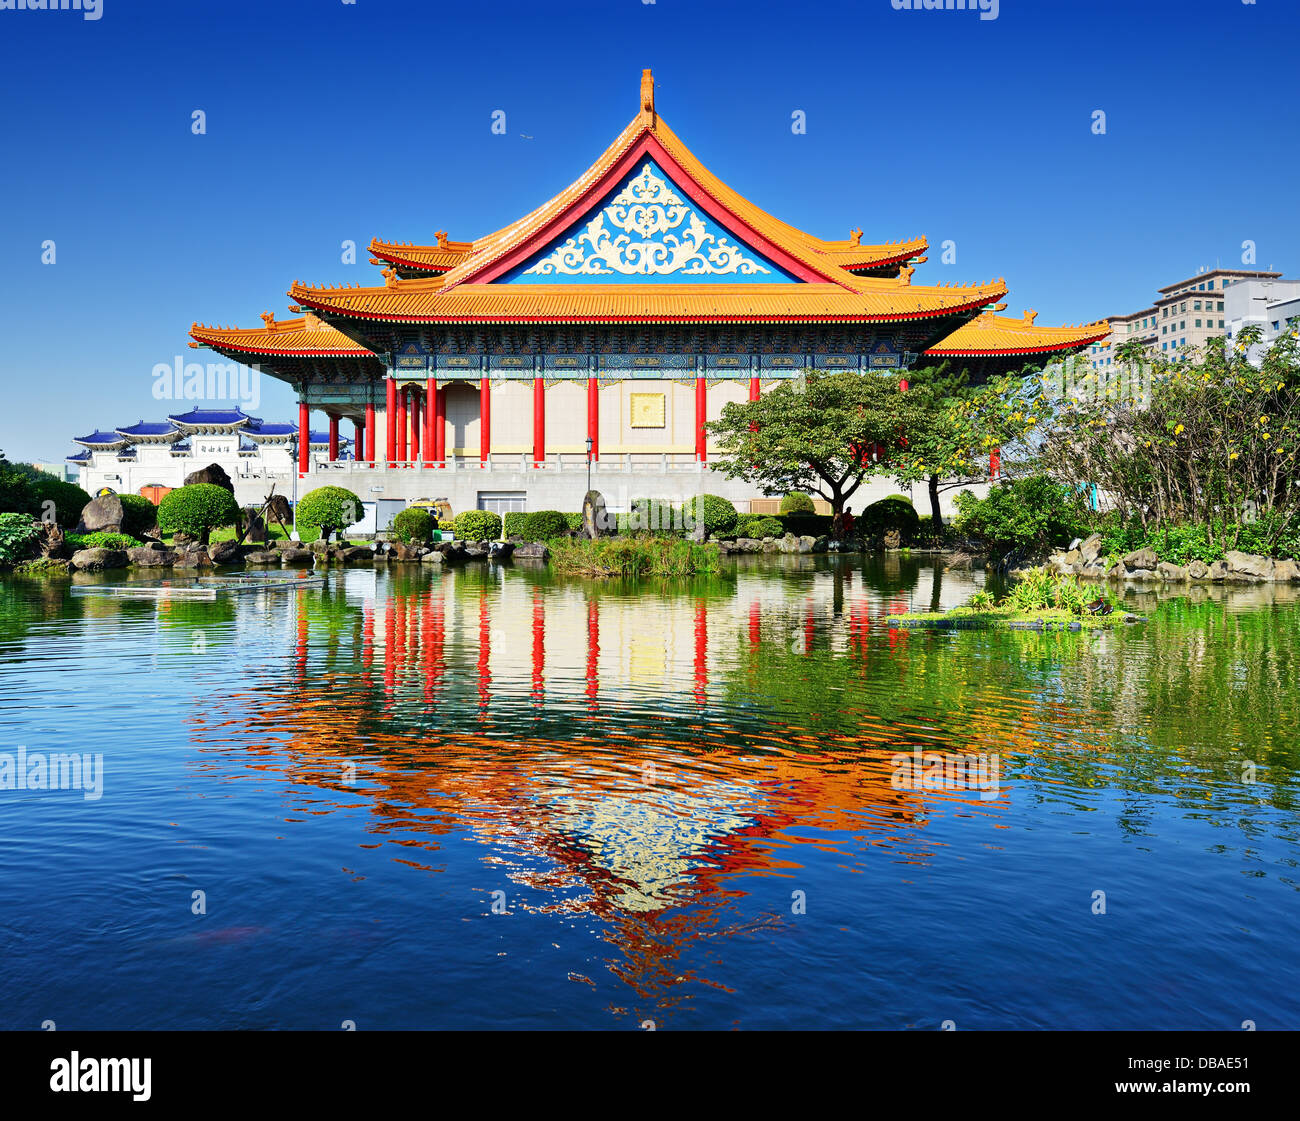 National Concert Hall of Taiwan in Freedom Square, Taipei, Taiwan. - Stock Image